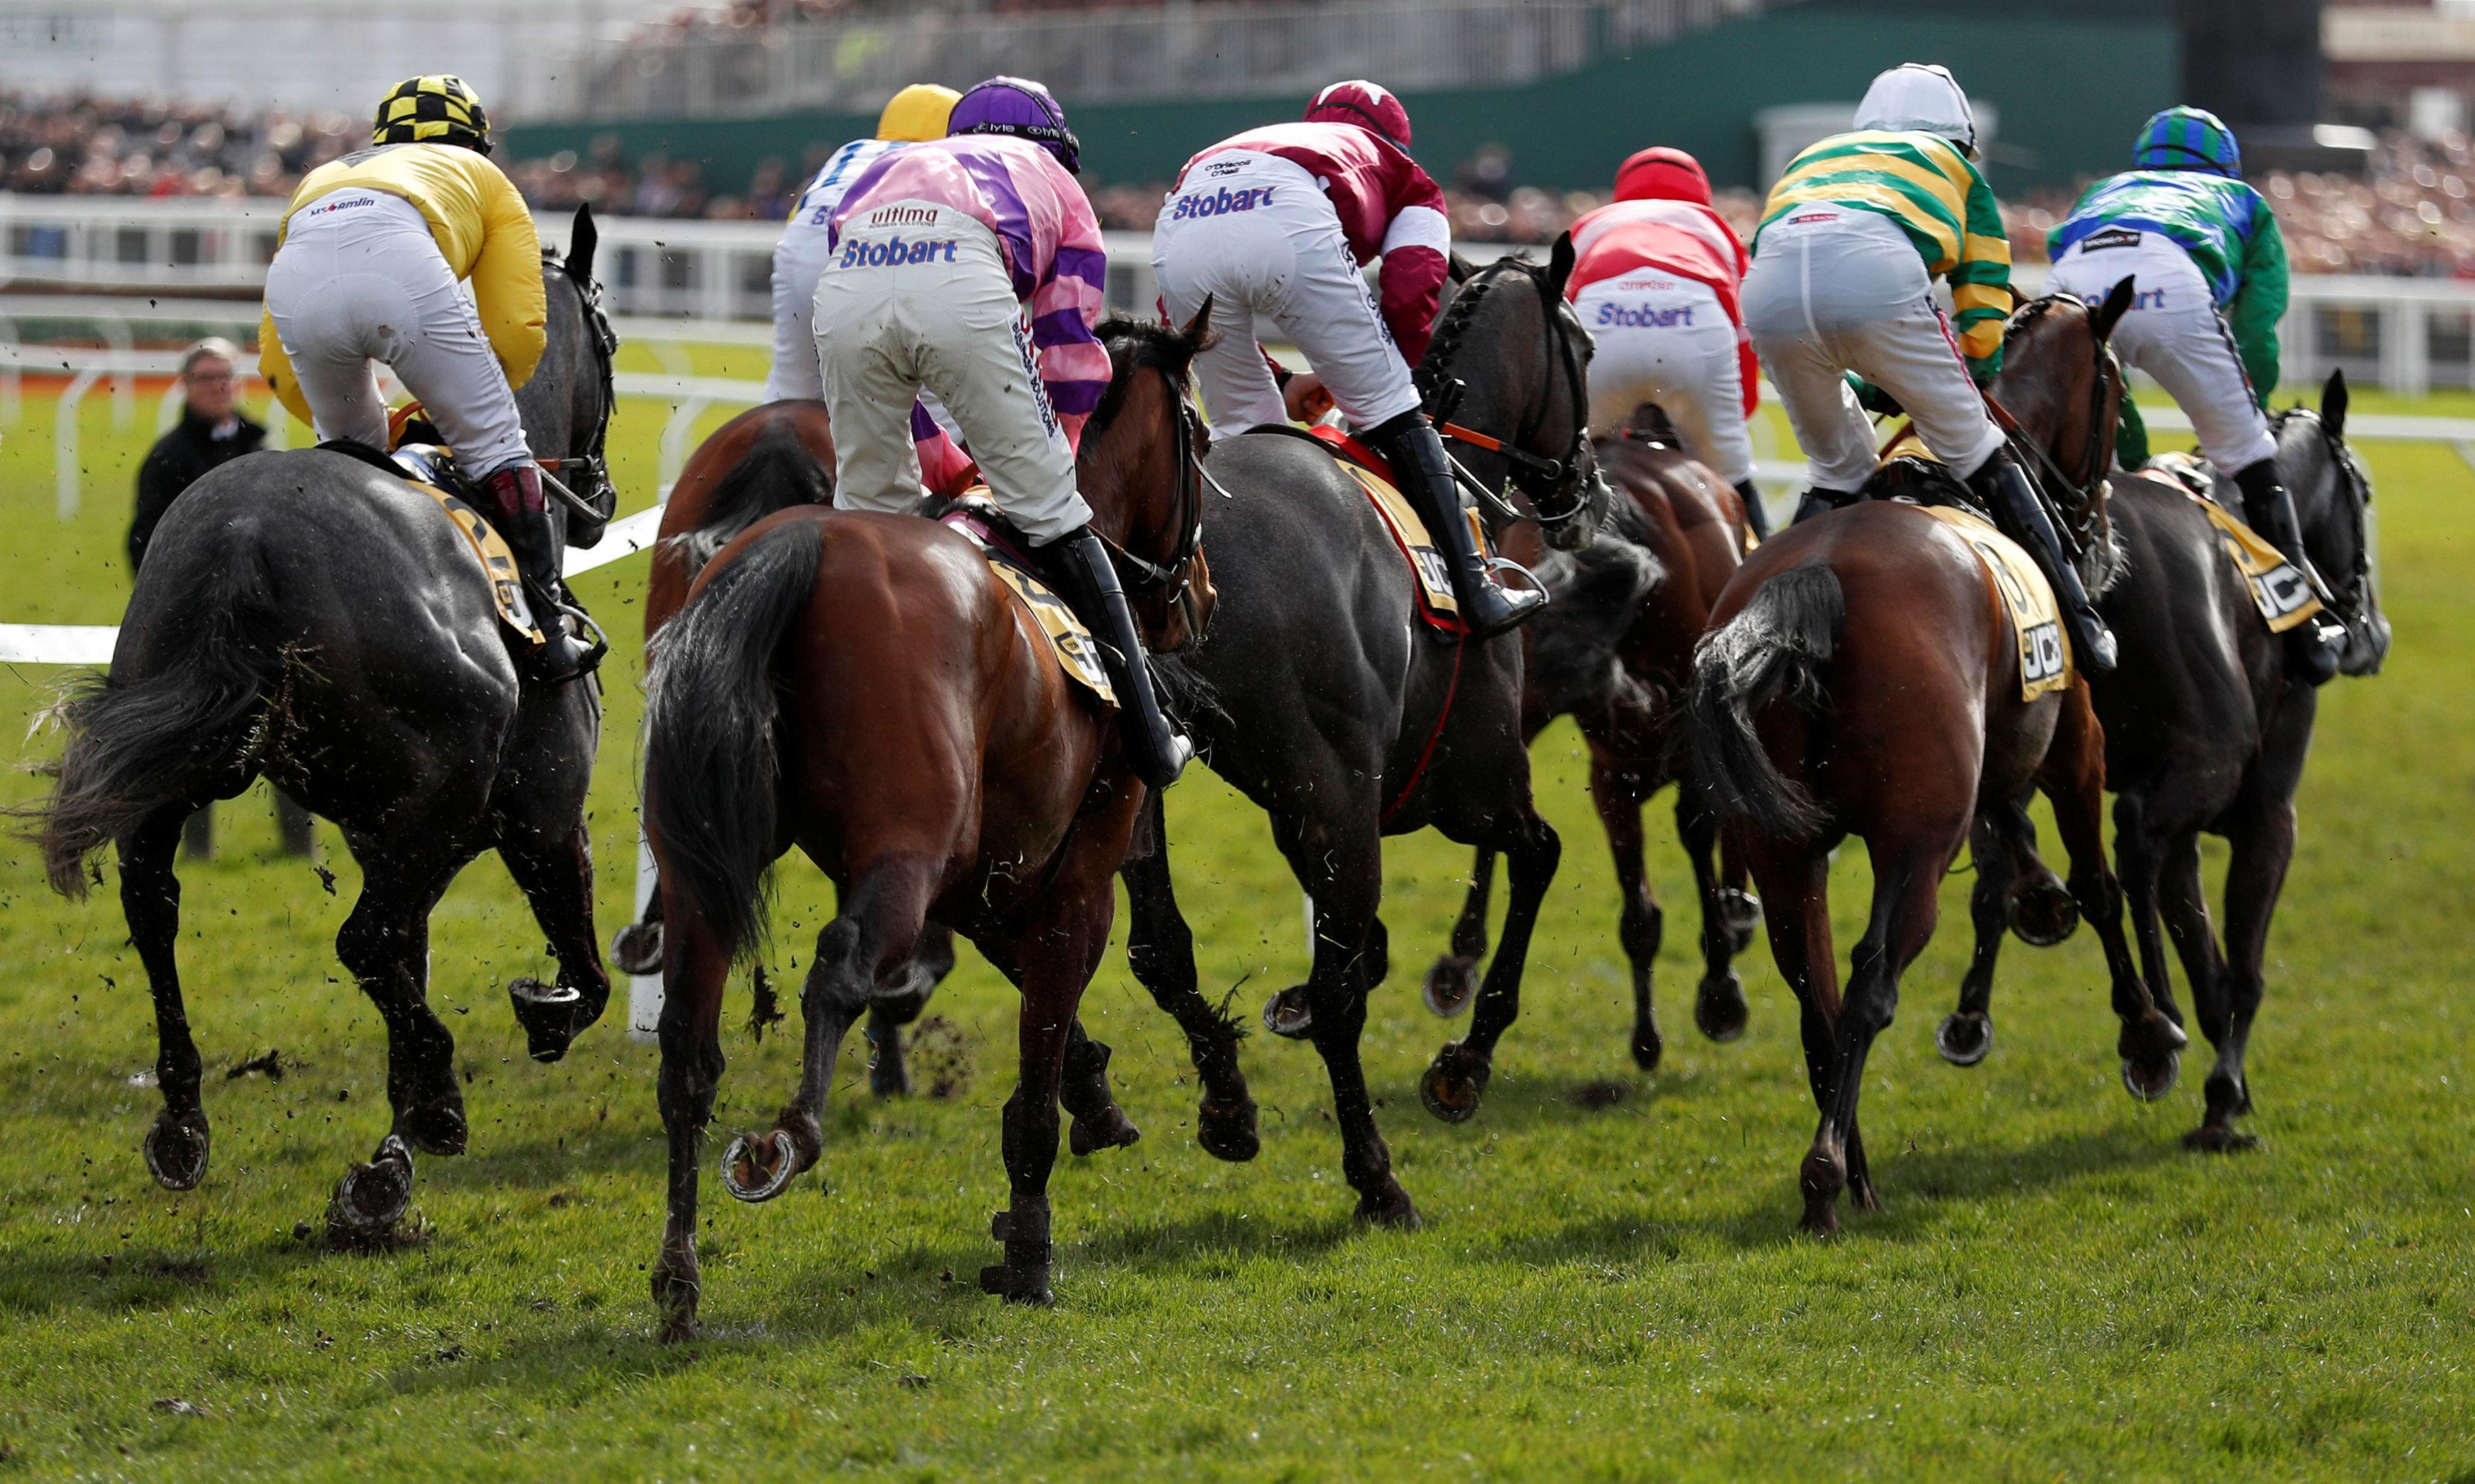 Latest horse racing results: Who won the 2.30 at Cheltenham live on ITV today?